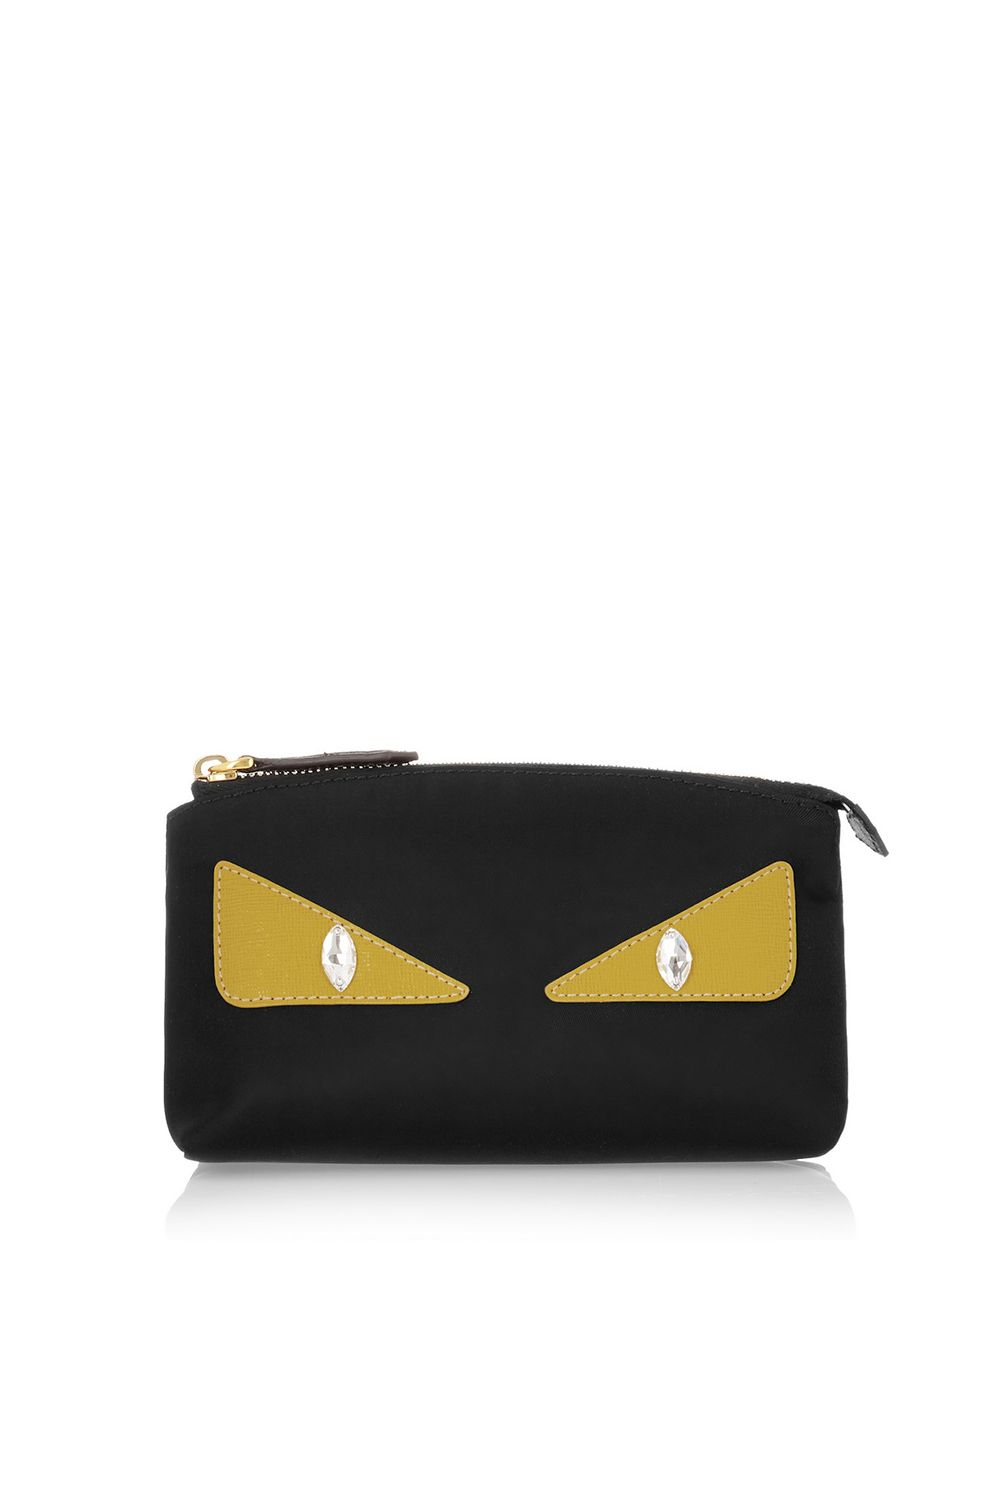 "<p>This cute-as-a-button Fendi monster pouch doubles as a *fashion* clutch when you want to go hands-free at an after-hours event.</p><p><strong>Fendi Monster Eyes Shell Cosmetic Case, $250&#x3B; <a href=""https://www.net-a-porter.com/us/en/product/639288/Fendi/monster-eyes-embellished-leather-trimmed-shell-cosmetics-case"">netaporter.com</a>.</strong></p>"